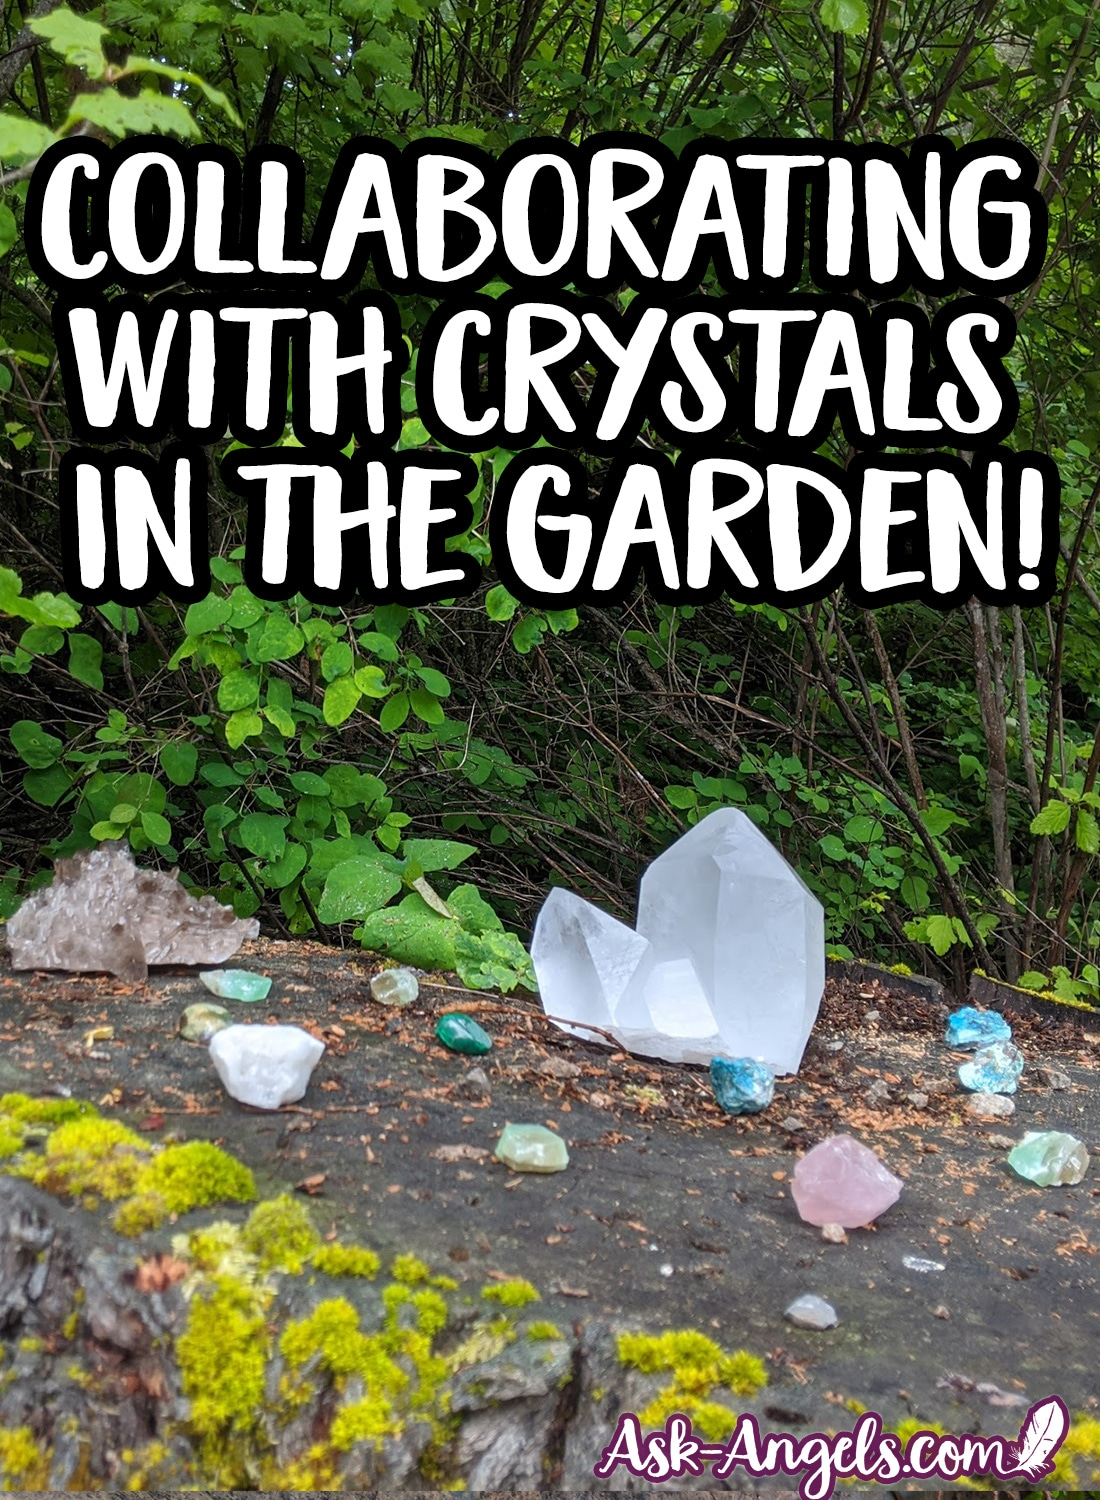 Collaborating with Crystals in the Garden